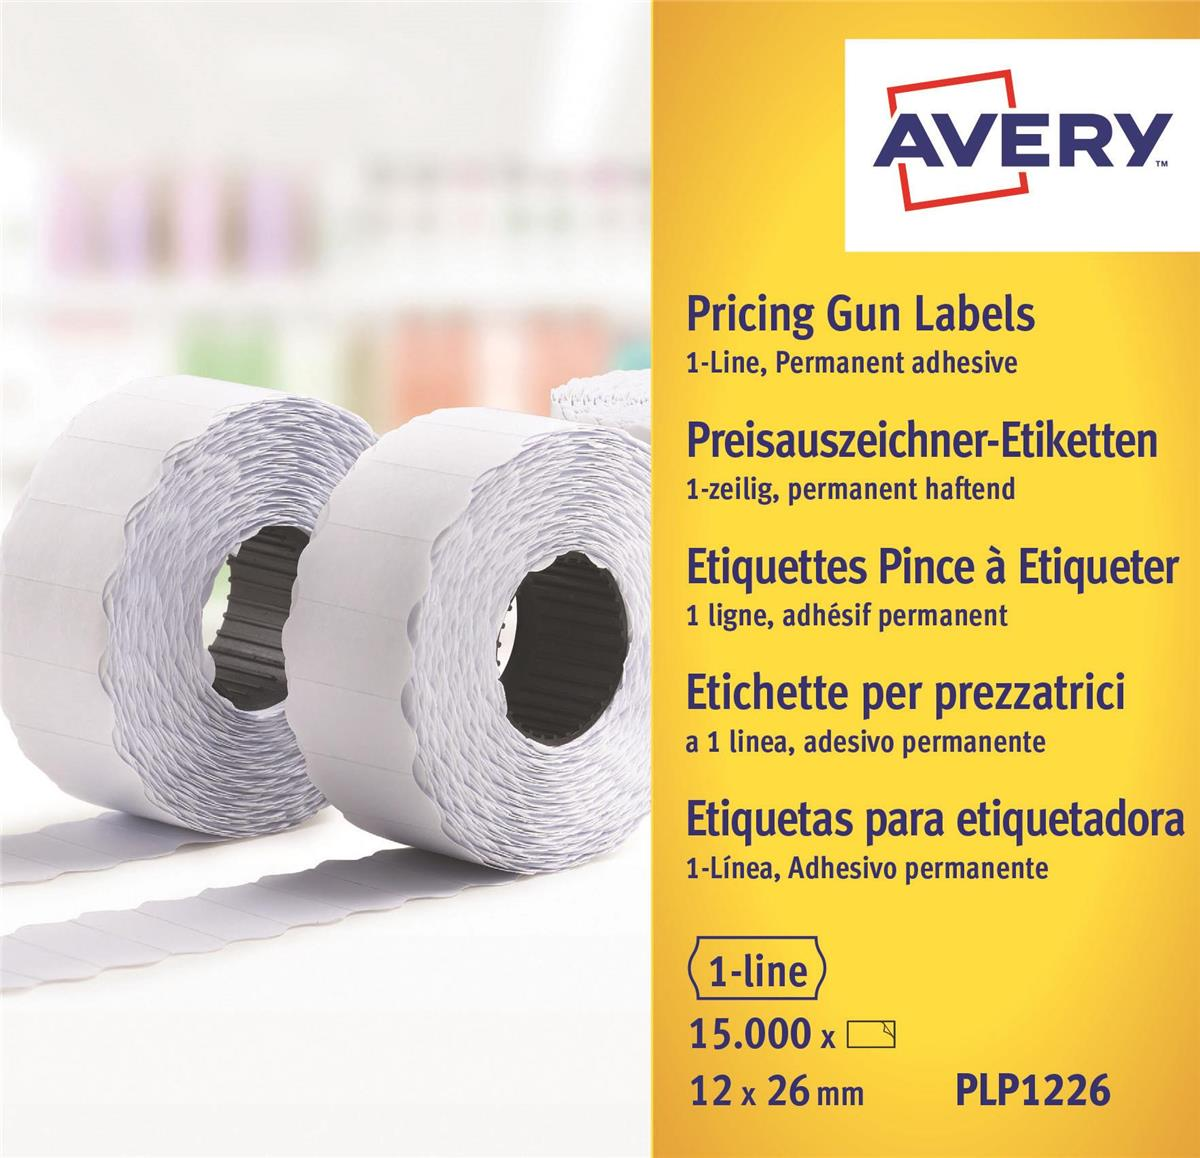 Image for Avery Labels for Labelling Gun 1-Line Permanent White 12x26mm 1500 Per Roll Ref PLP1226 [Pack 10]